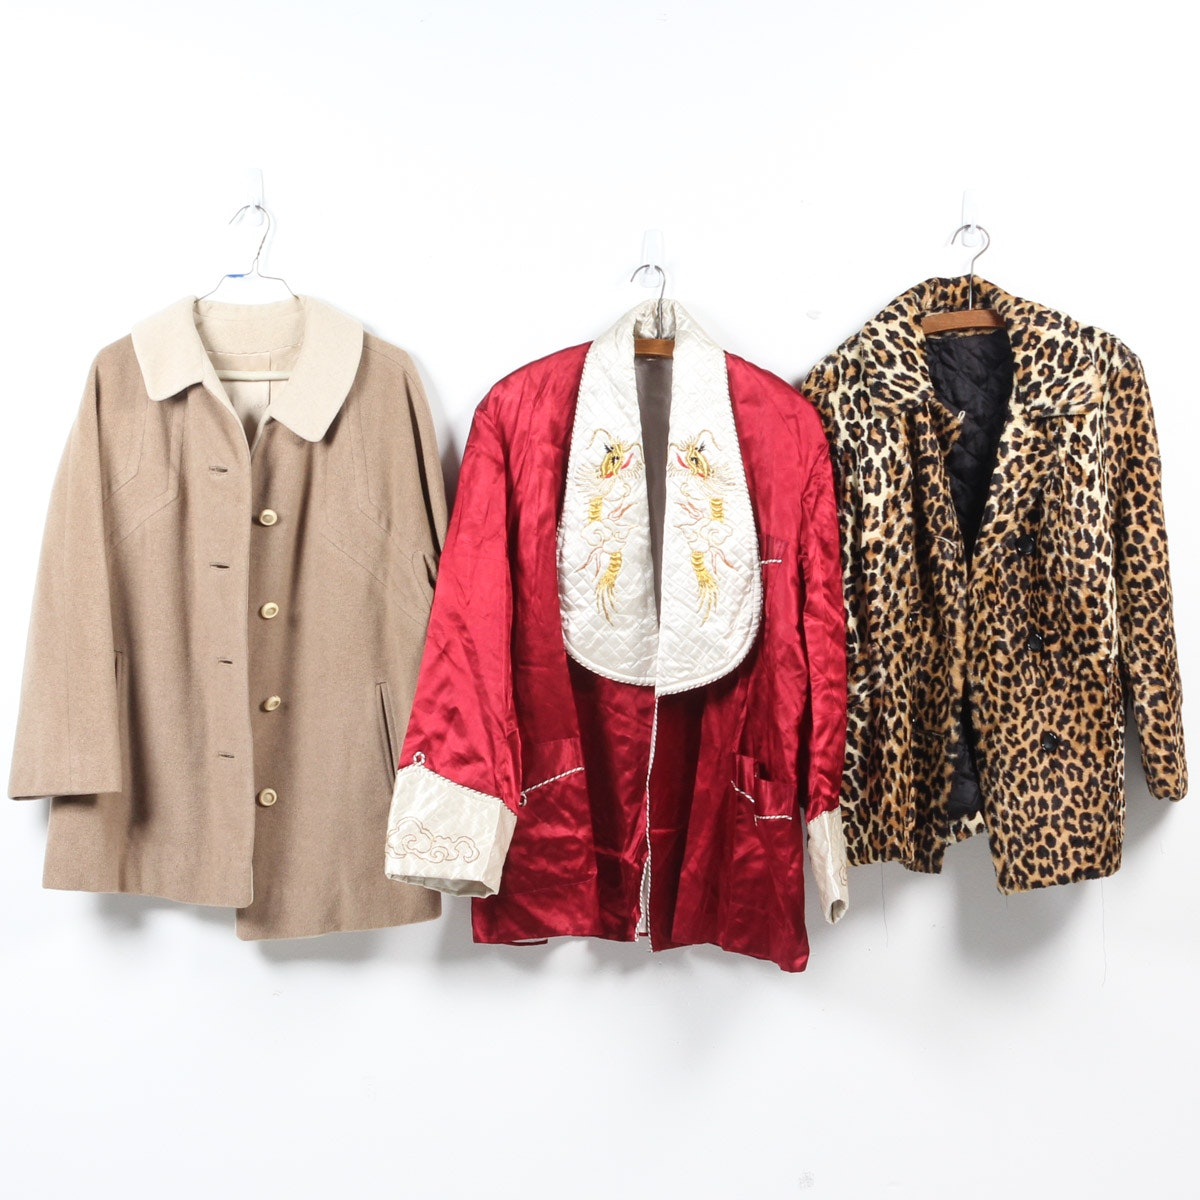 Women's Vintage Outerwear Collection